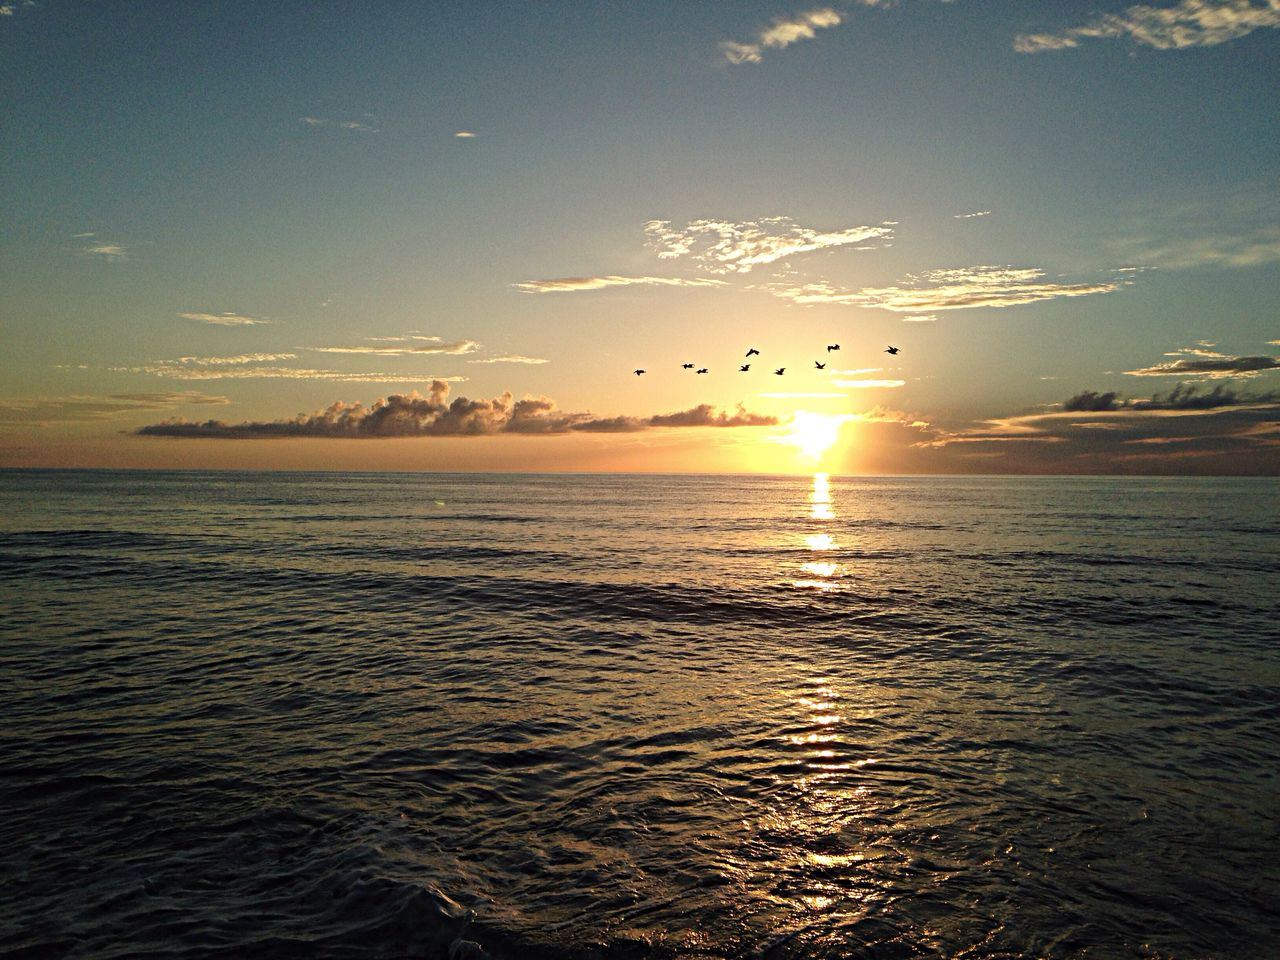 Sunrise in Nags Head, North Carolina. OBX14 Sunrise Water Birds